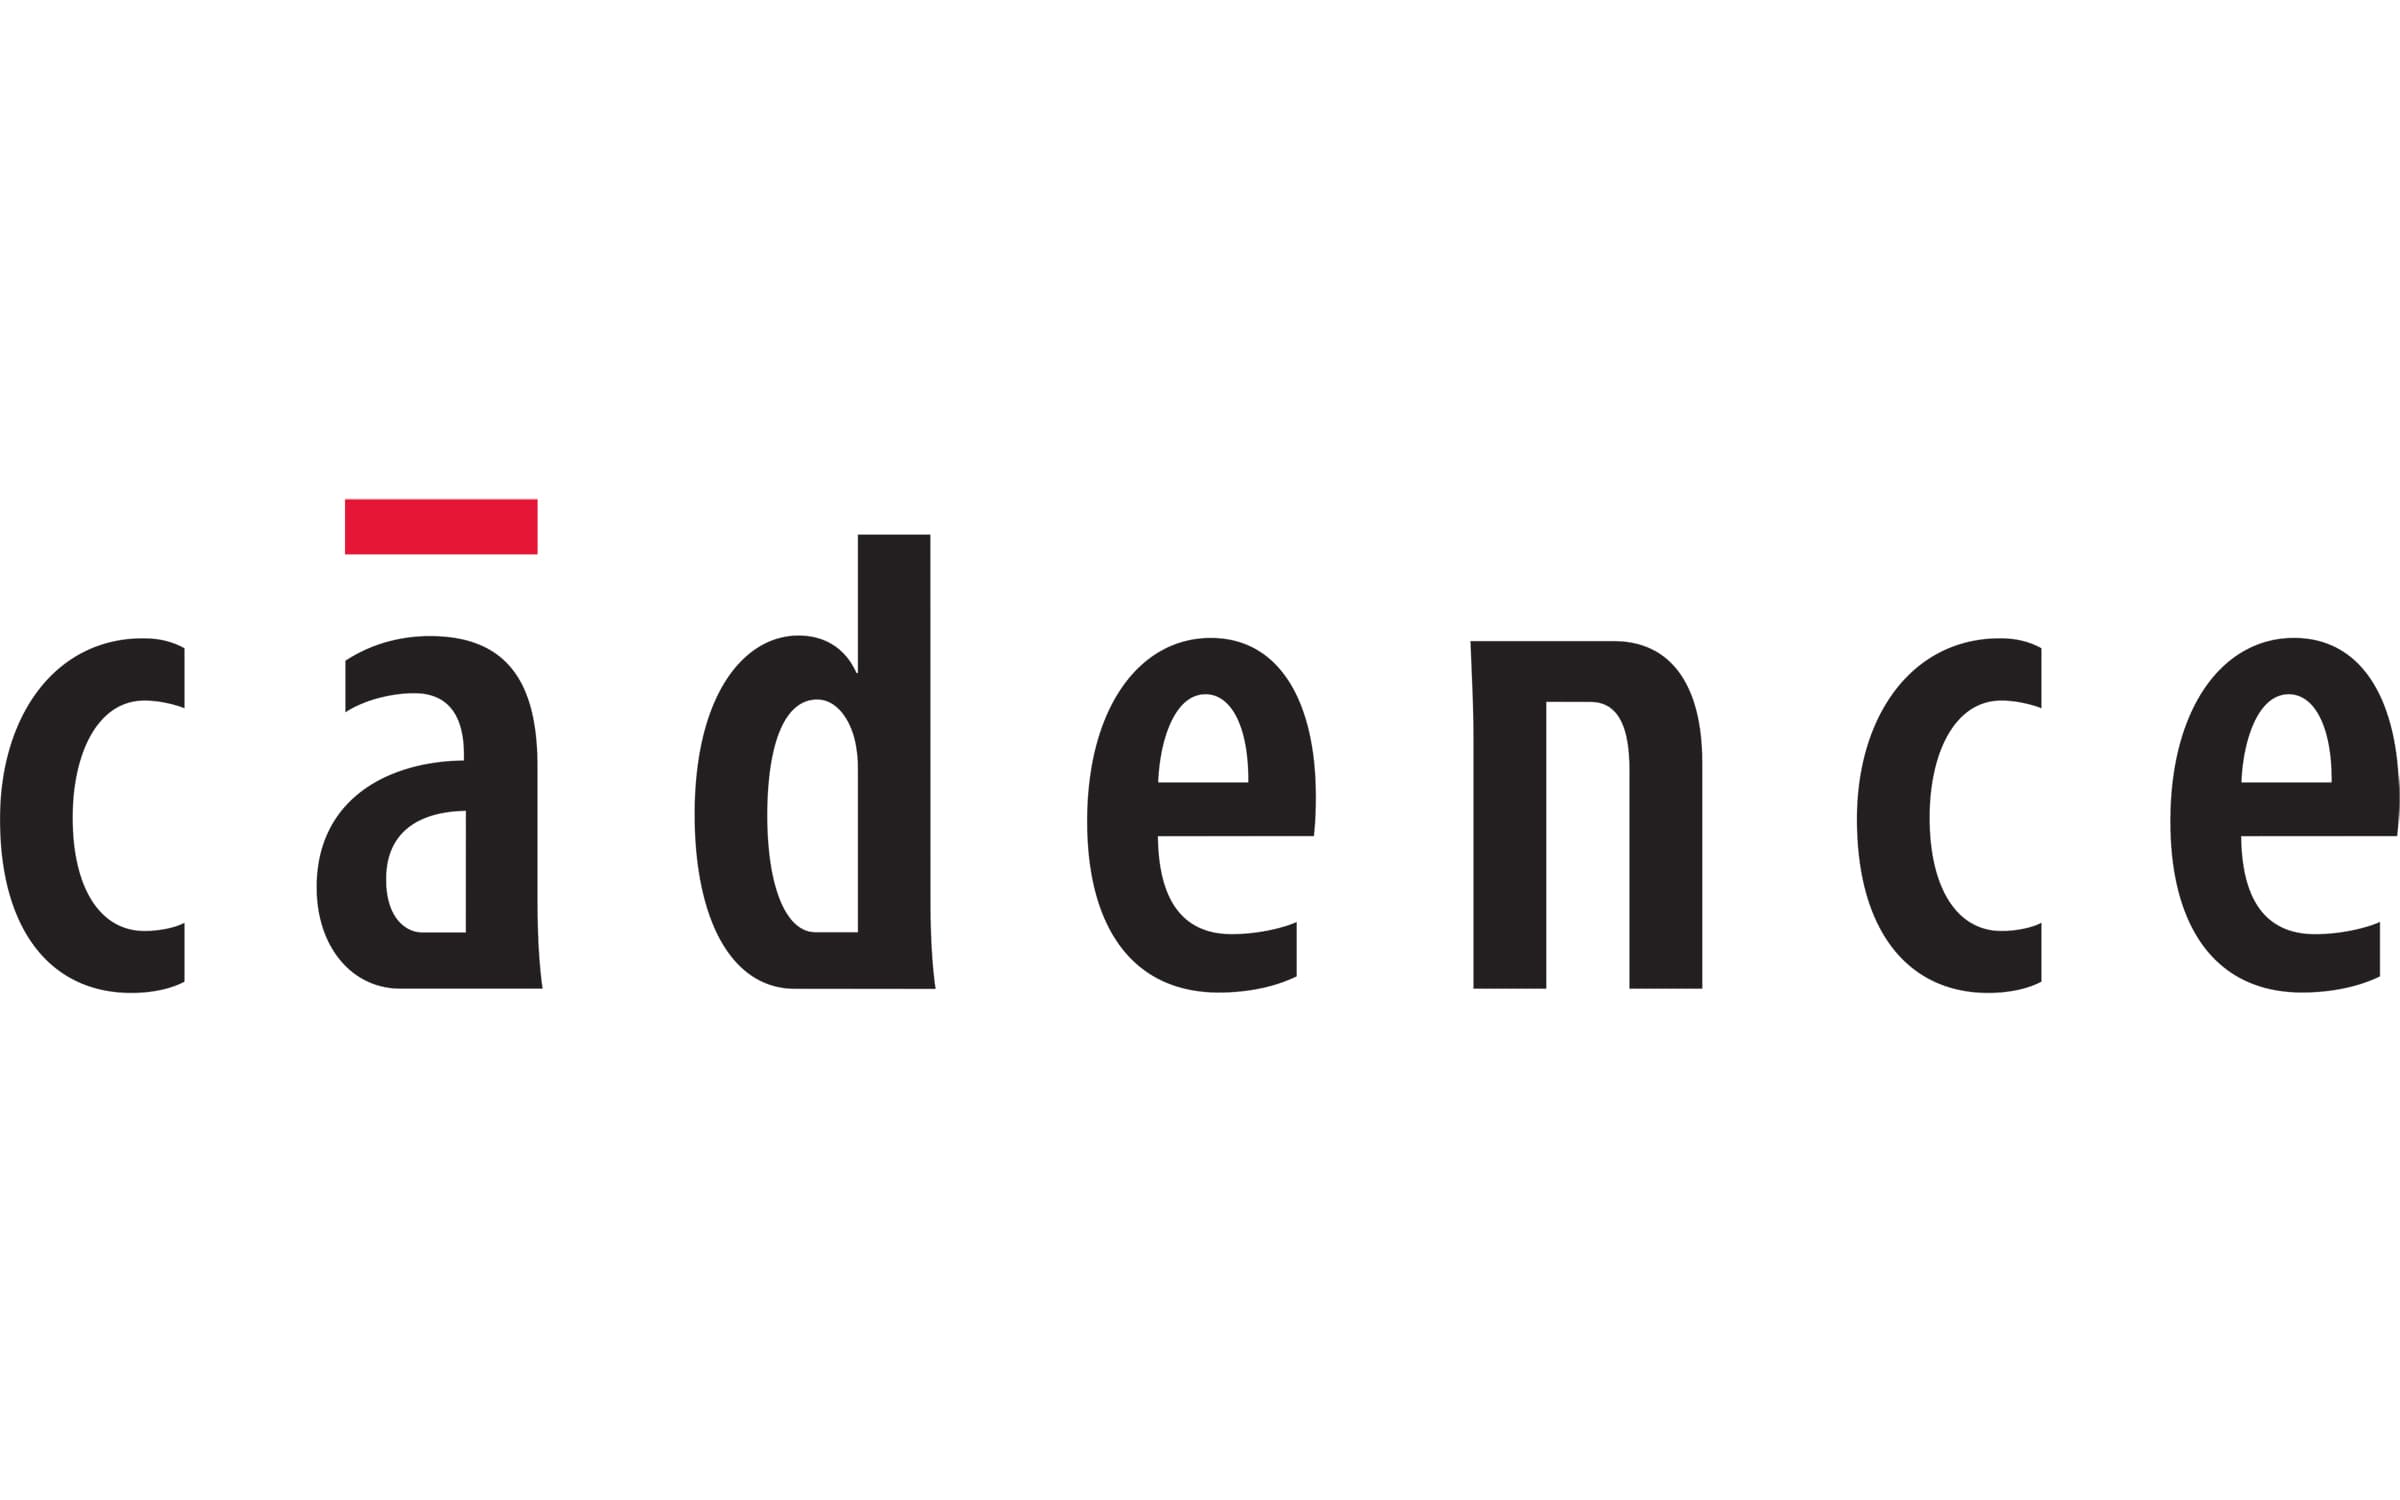 Cadence logo and symbol, meaning, history, PNG